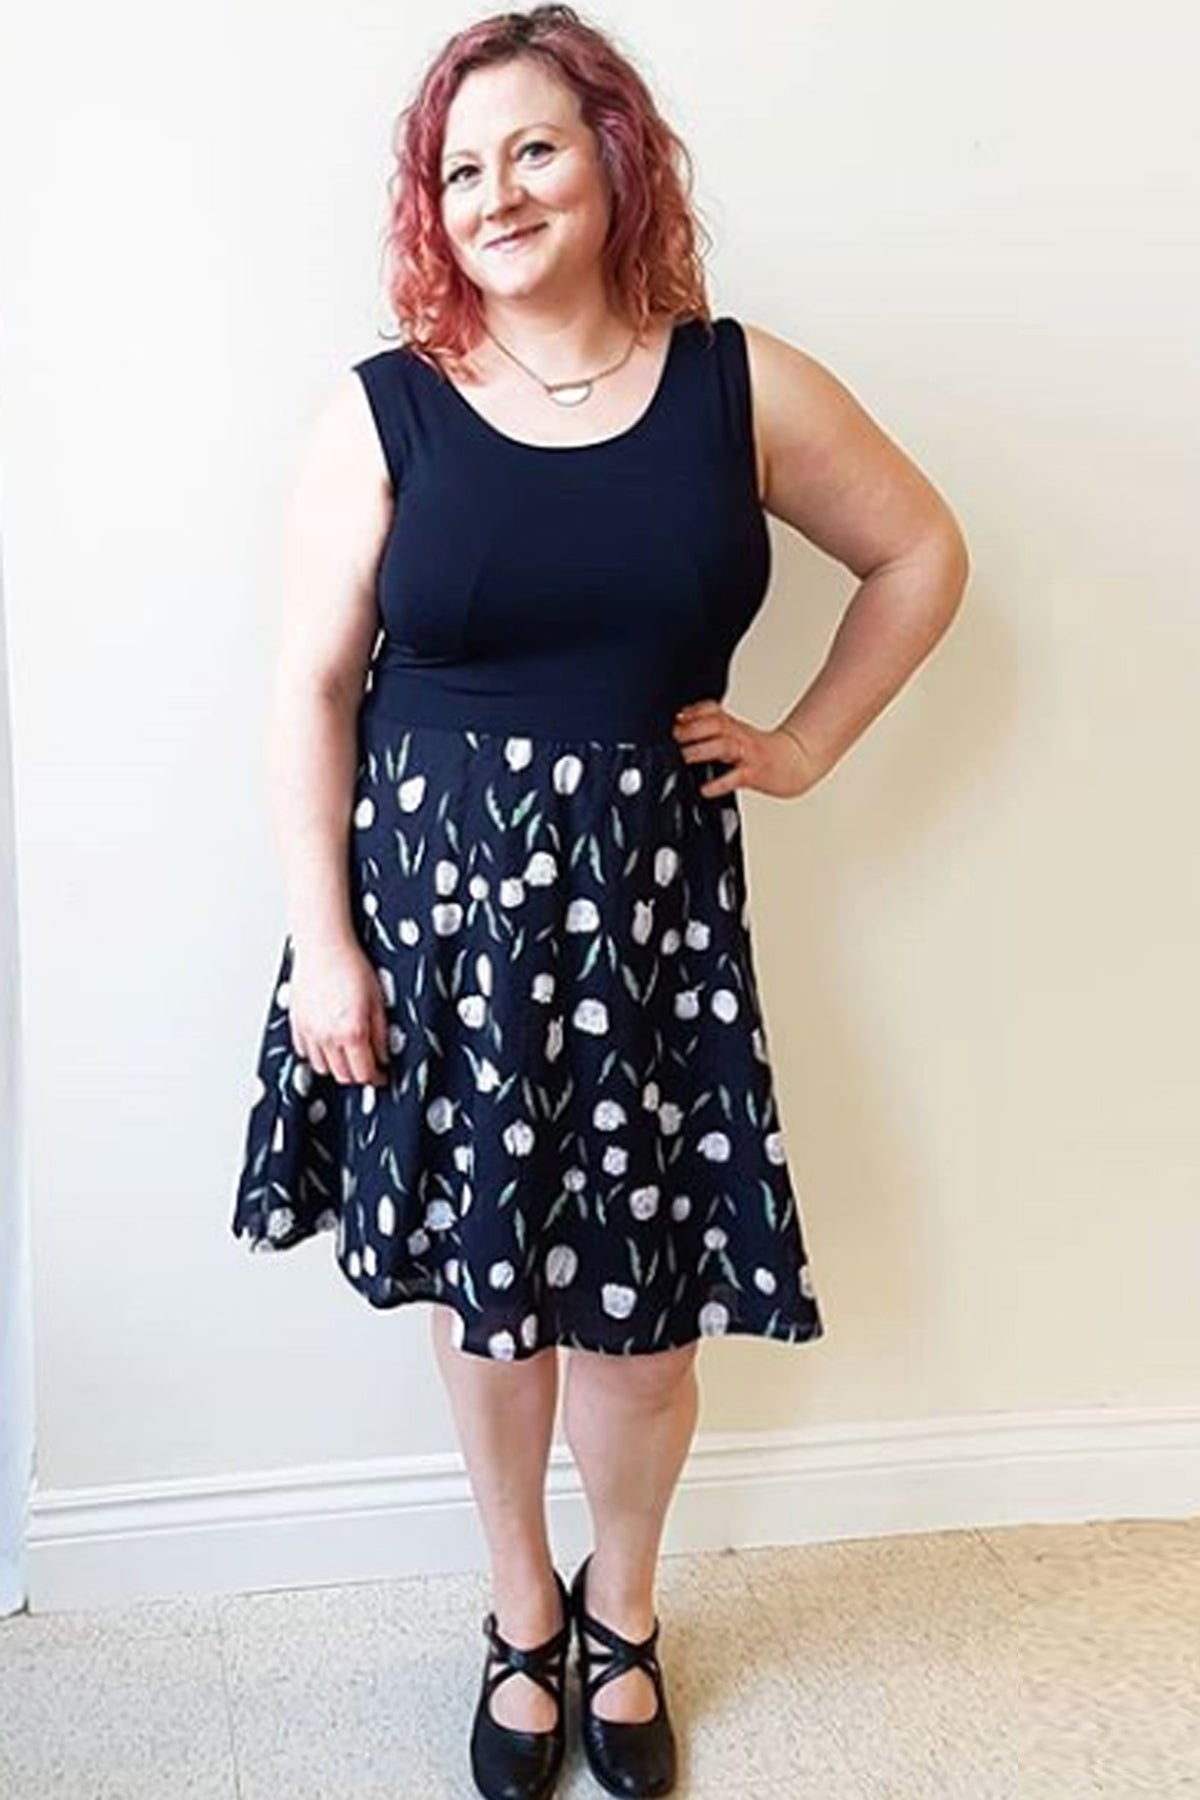 Fern Dress by Cherry Bobin, Navy Tulips, sleeveless, fitted bodice, full skirt, bamboo jersey, sizes XS to XXL, made in Quebec